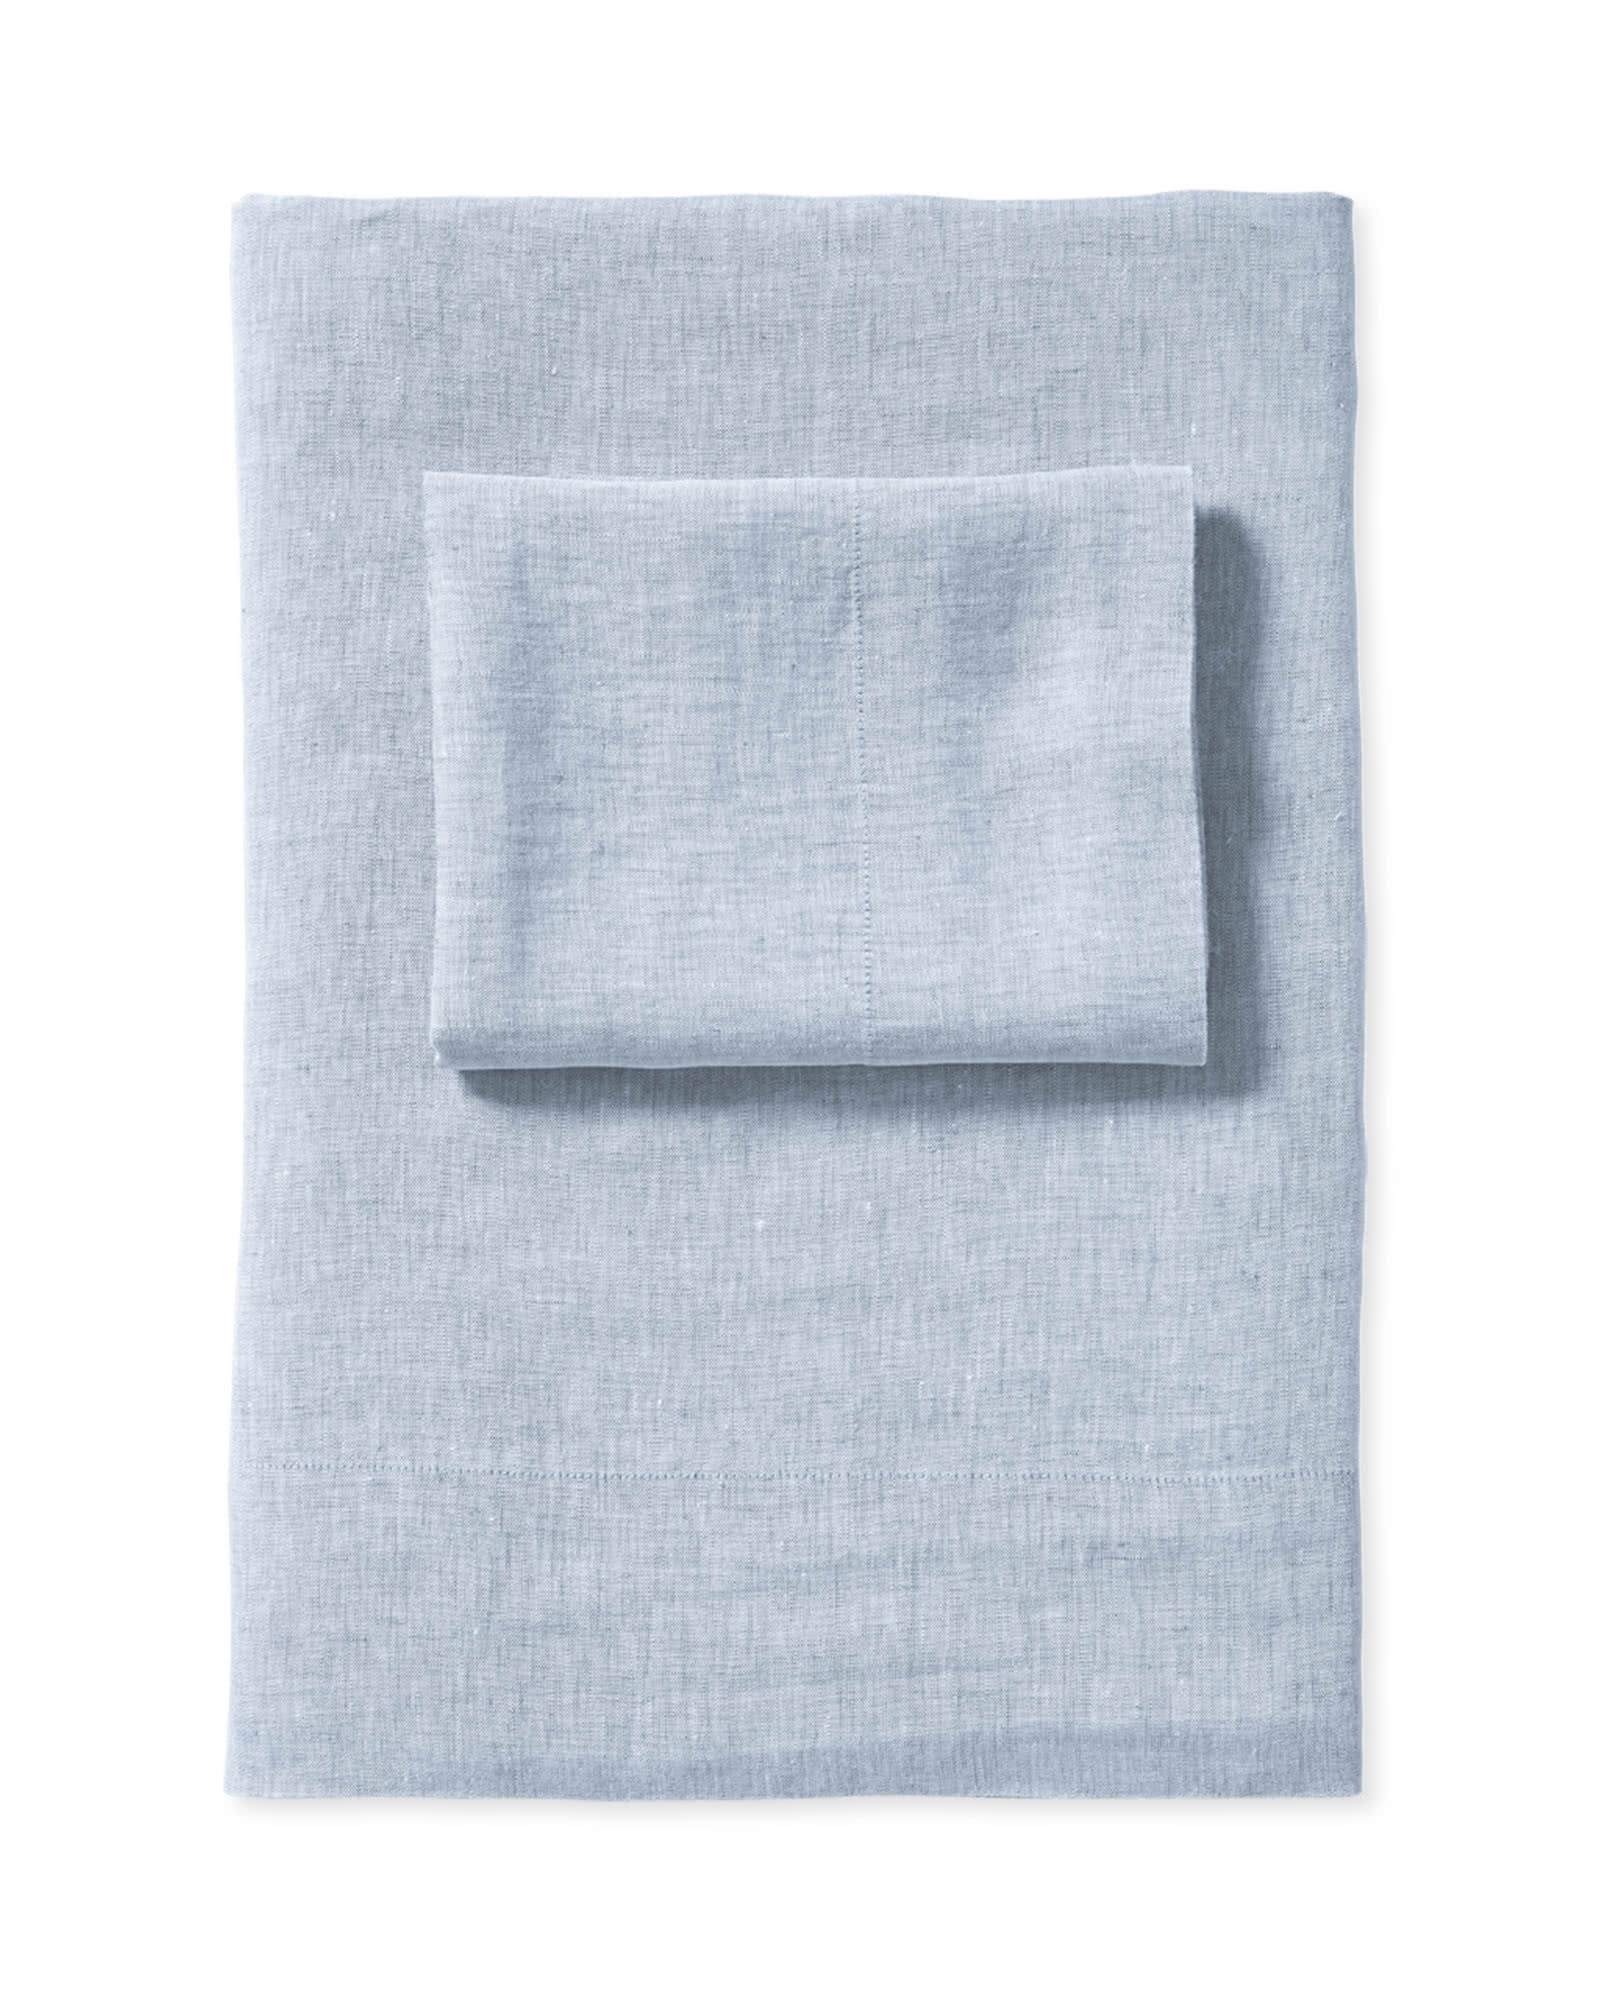 Cavallo Linen Sheet Set, Blue Chambray